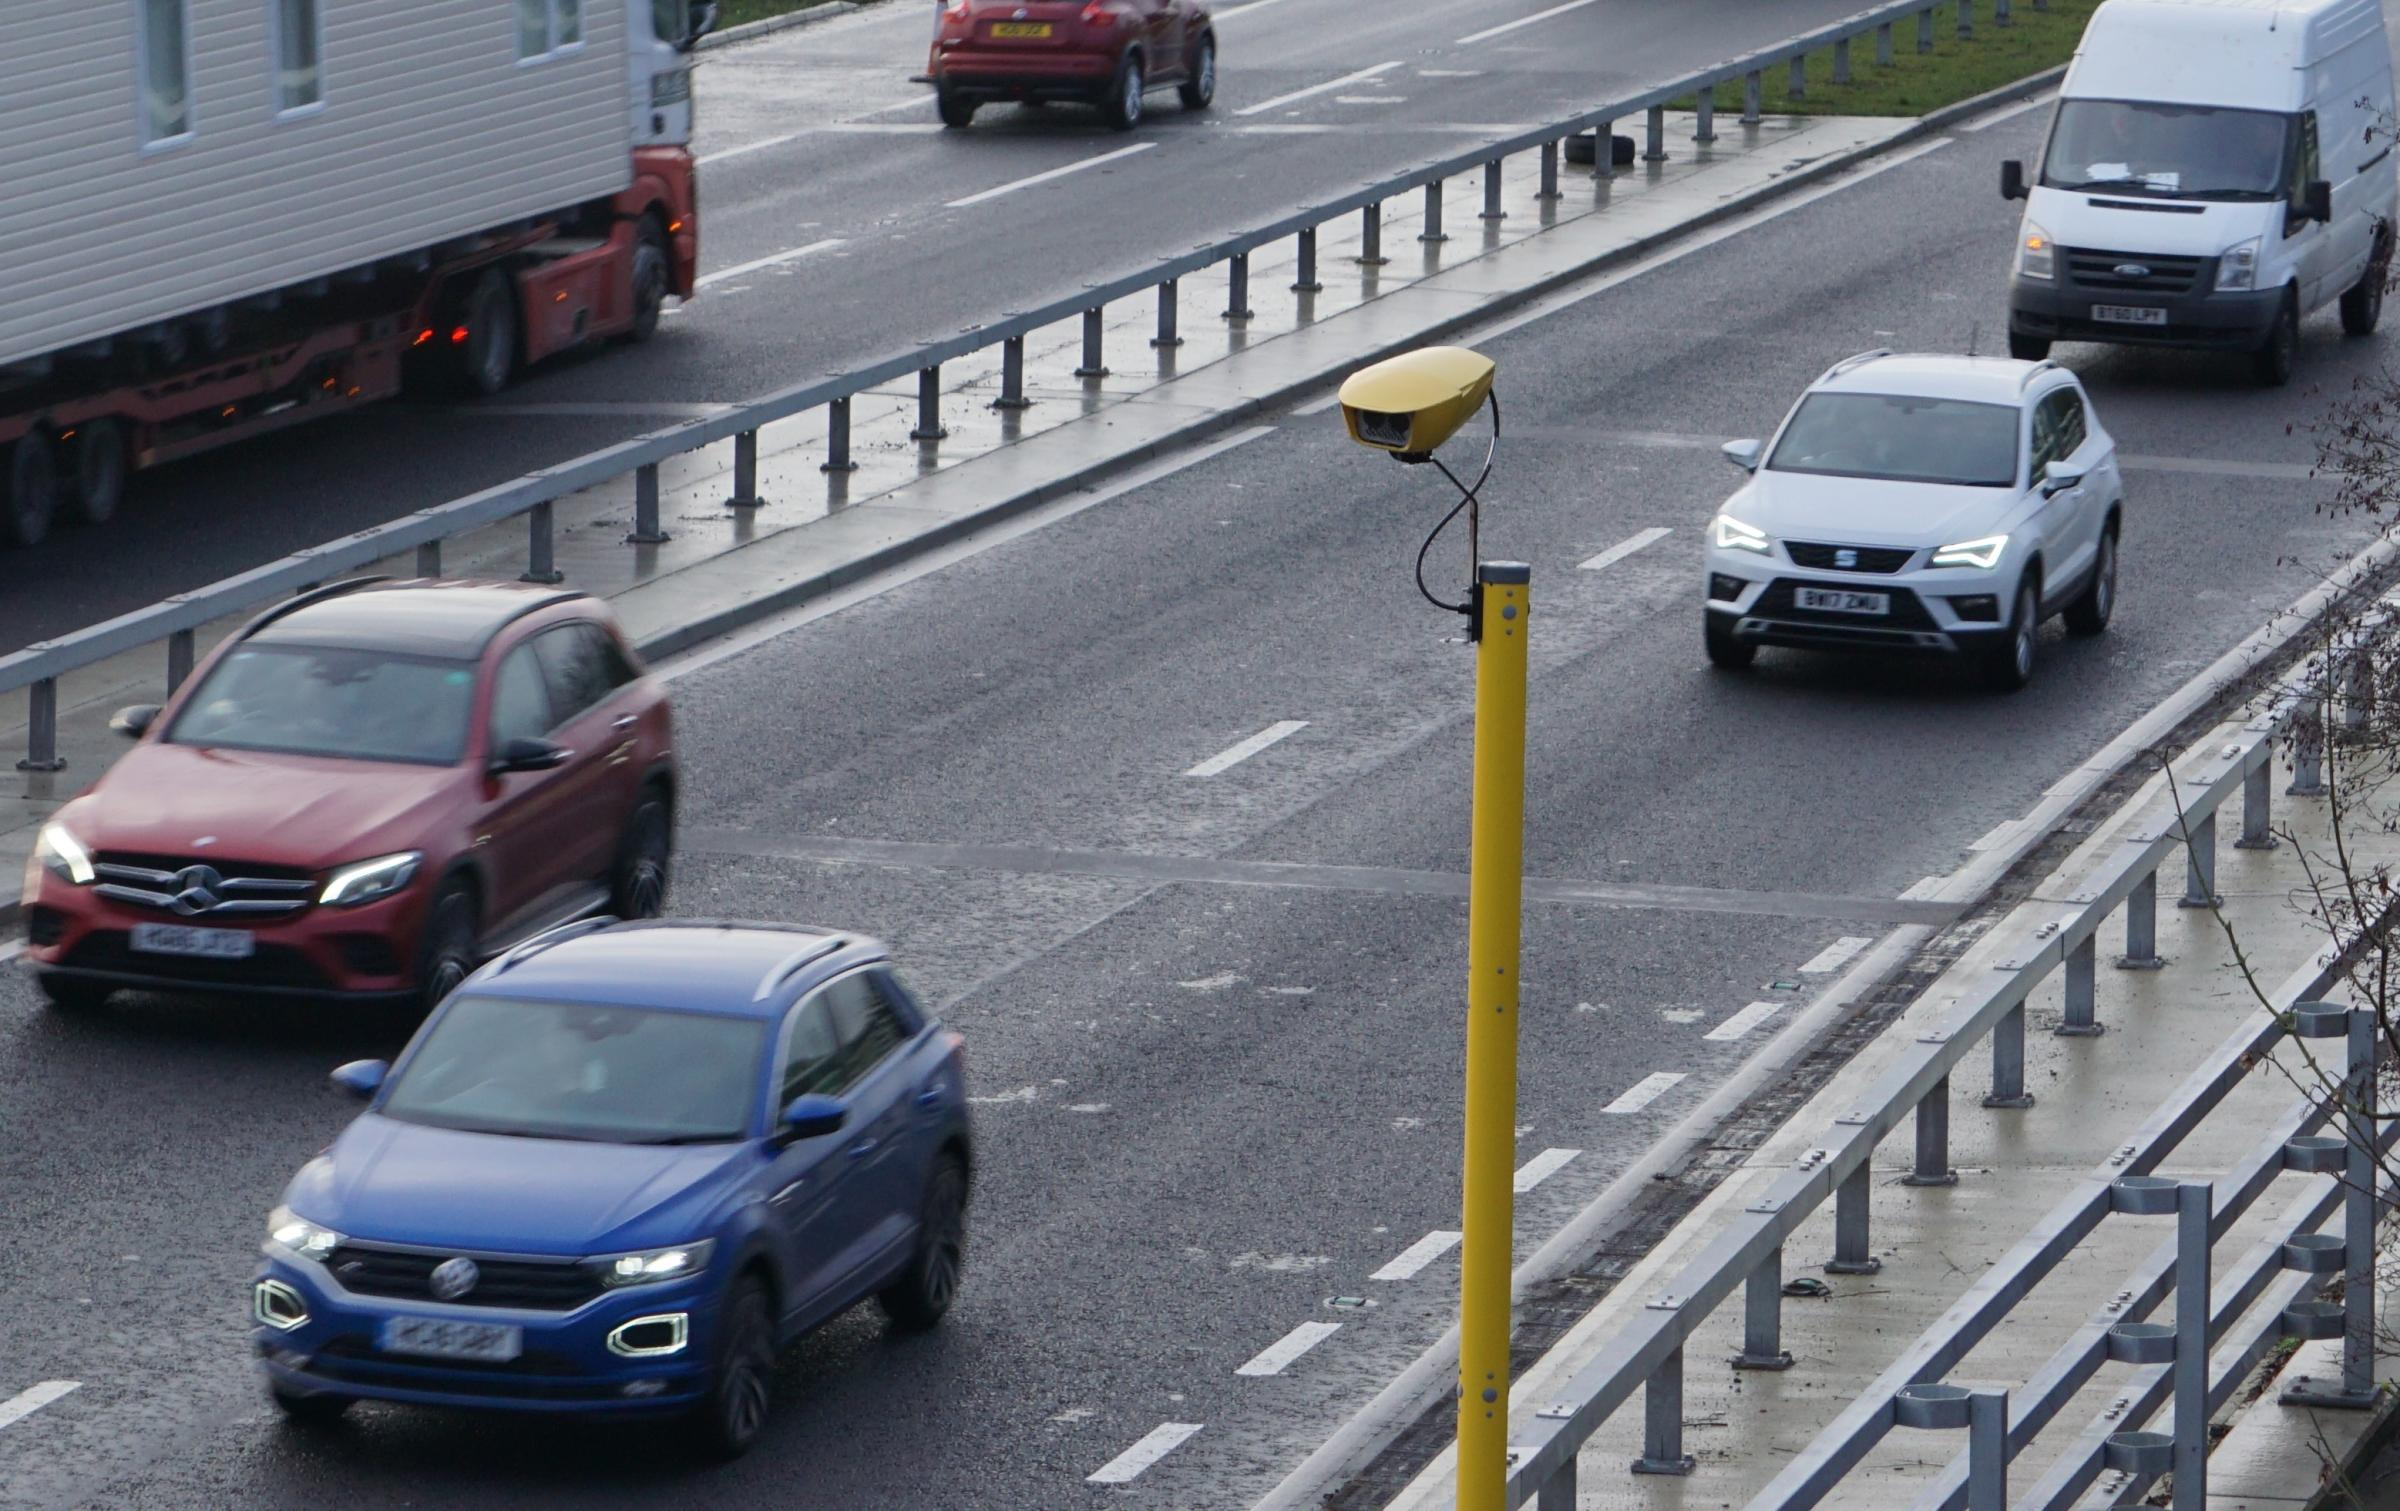 More speed cameras could be coming to Dorset